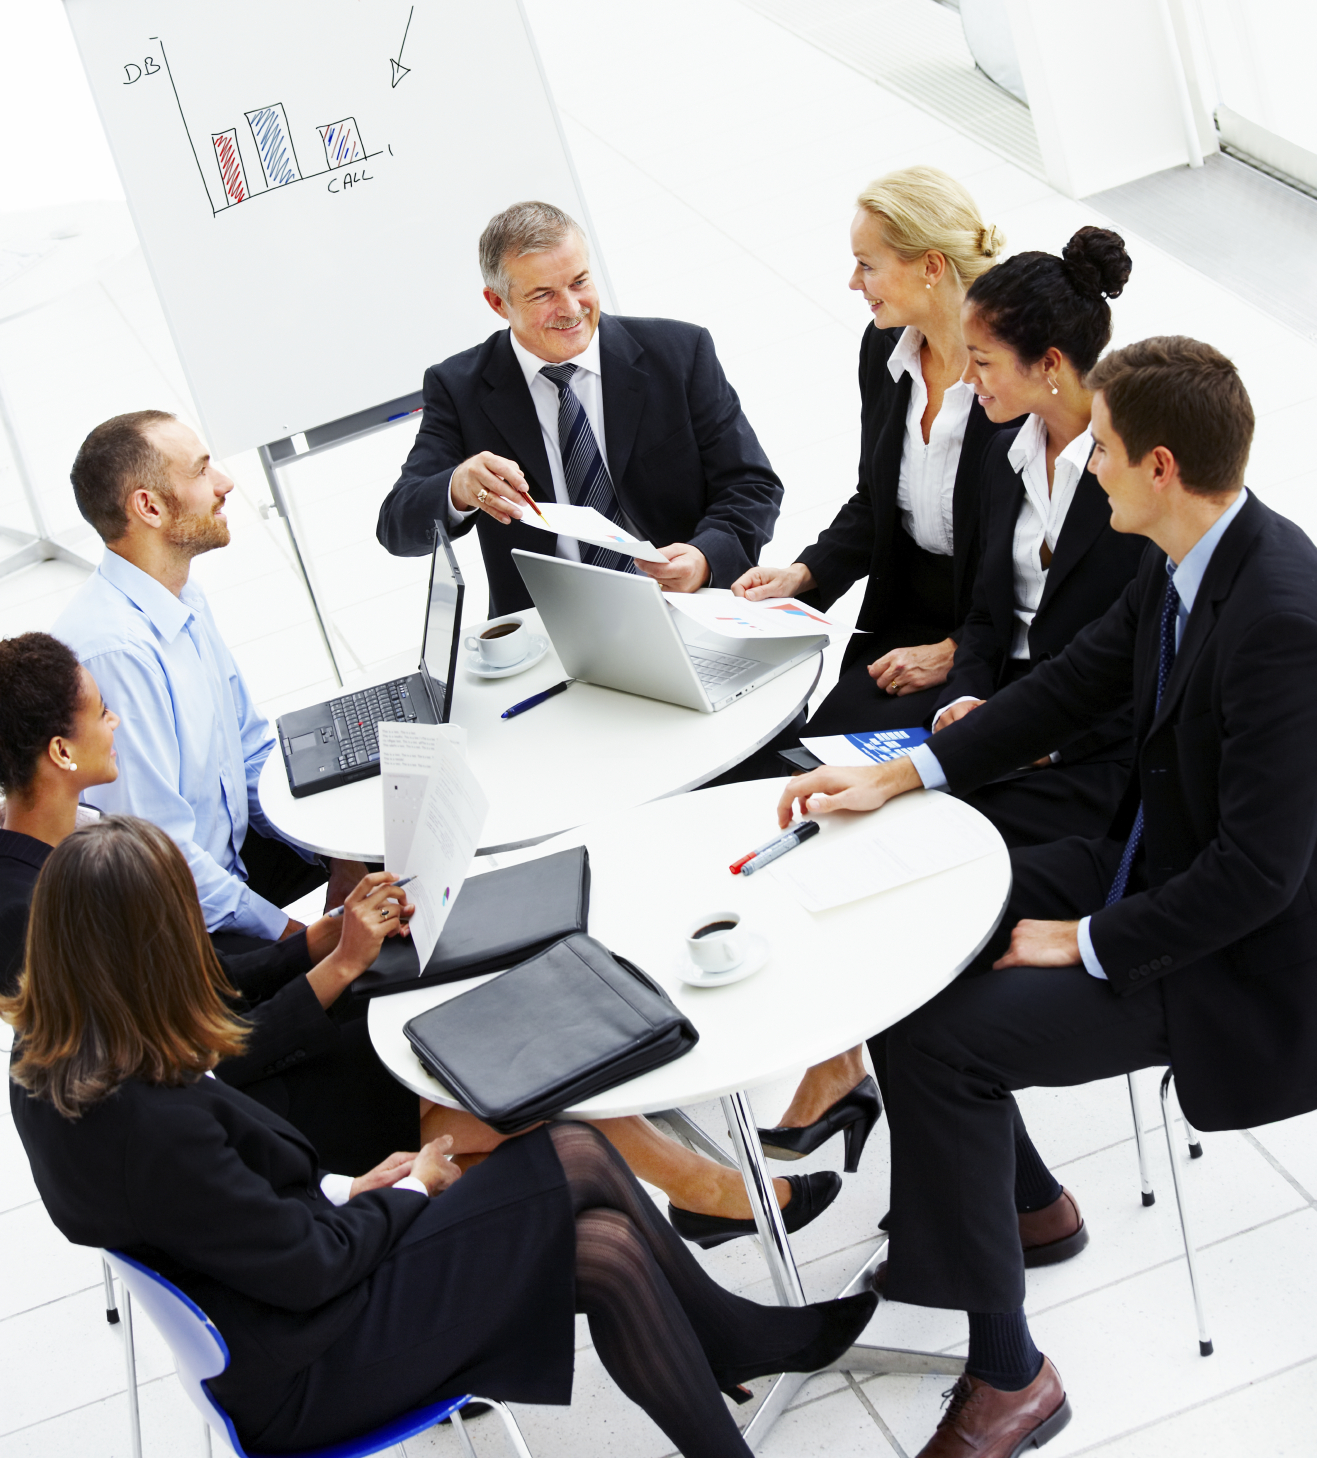 The Toe Tapper, the Pen Clicker and the Gum Smacker – Office Meeting Etiquette for Everyone